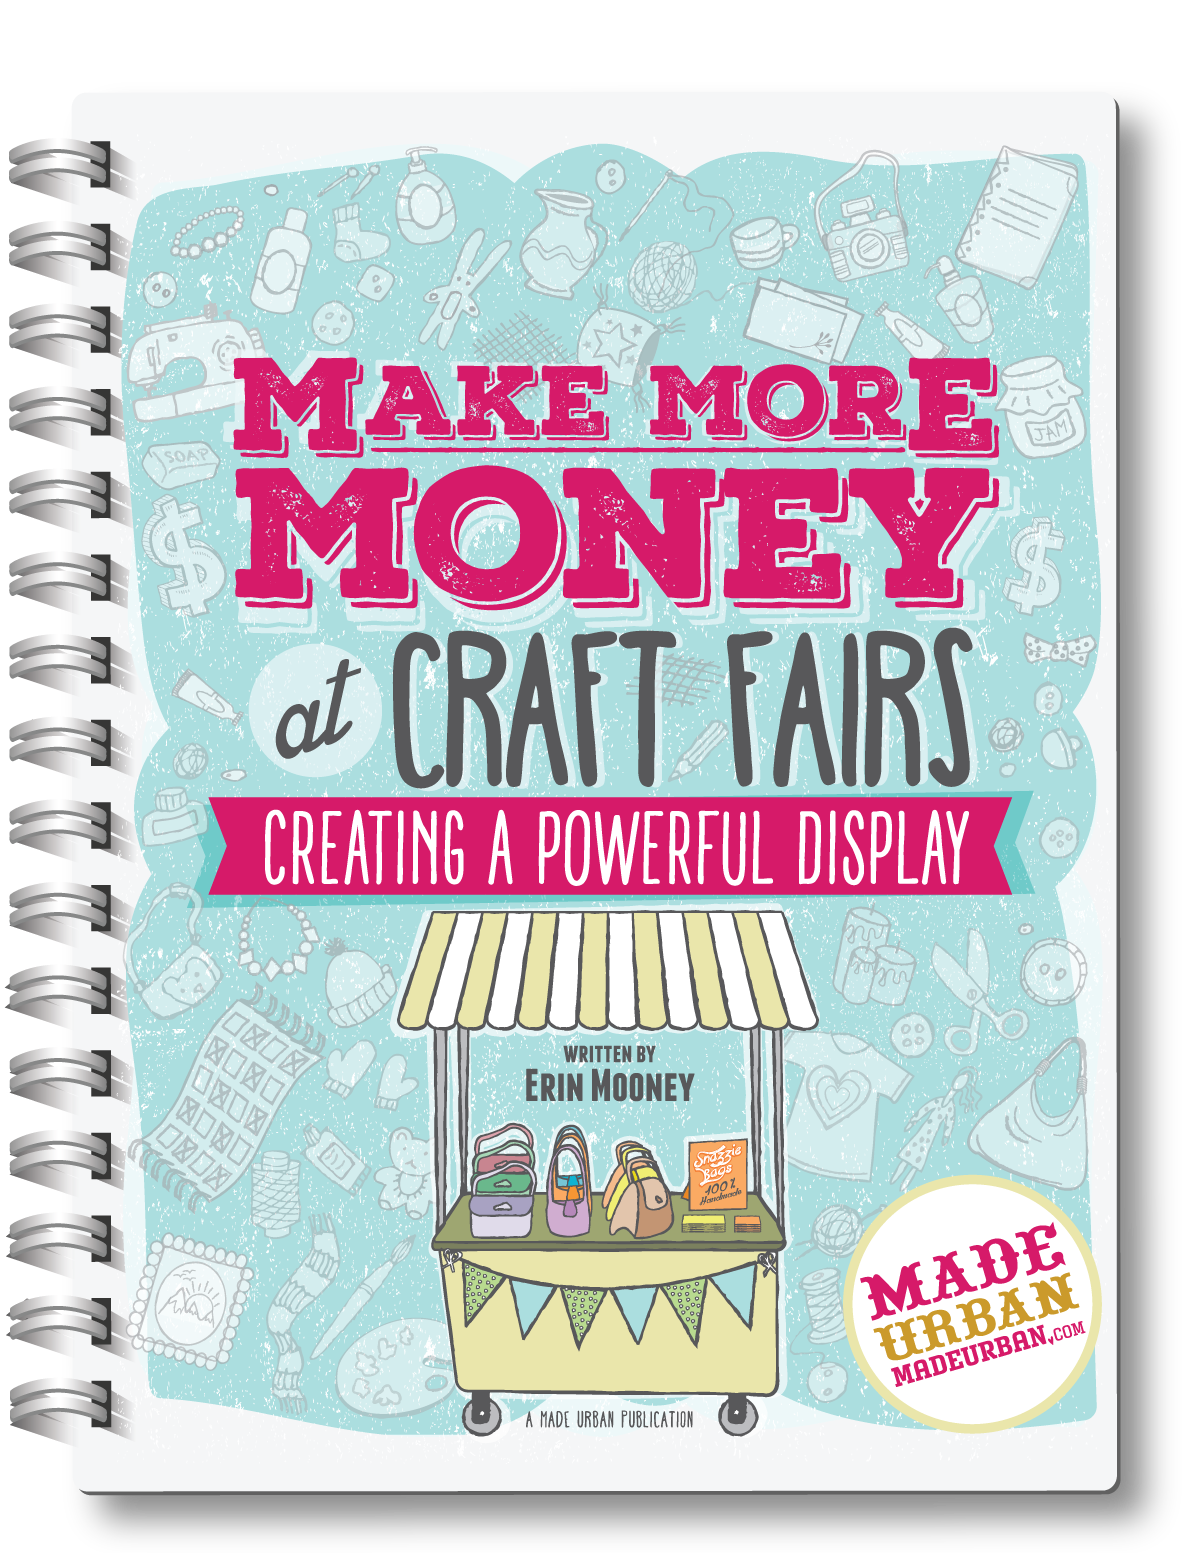 How you display your products at a craft fair and design your booth is more important than what you sell. If you don't design a space that grabs attention, draws shoppers over and leads them to believe your products are worth (or worth more than) their price, you'll have a hard time making sales. Here's how to design a powerful craft fair display...